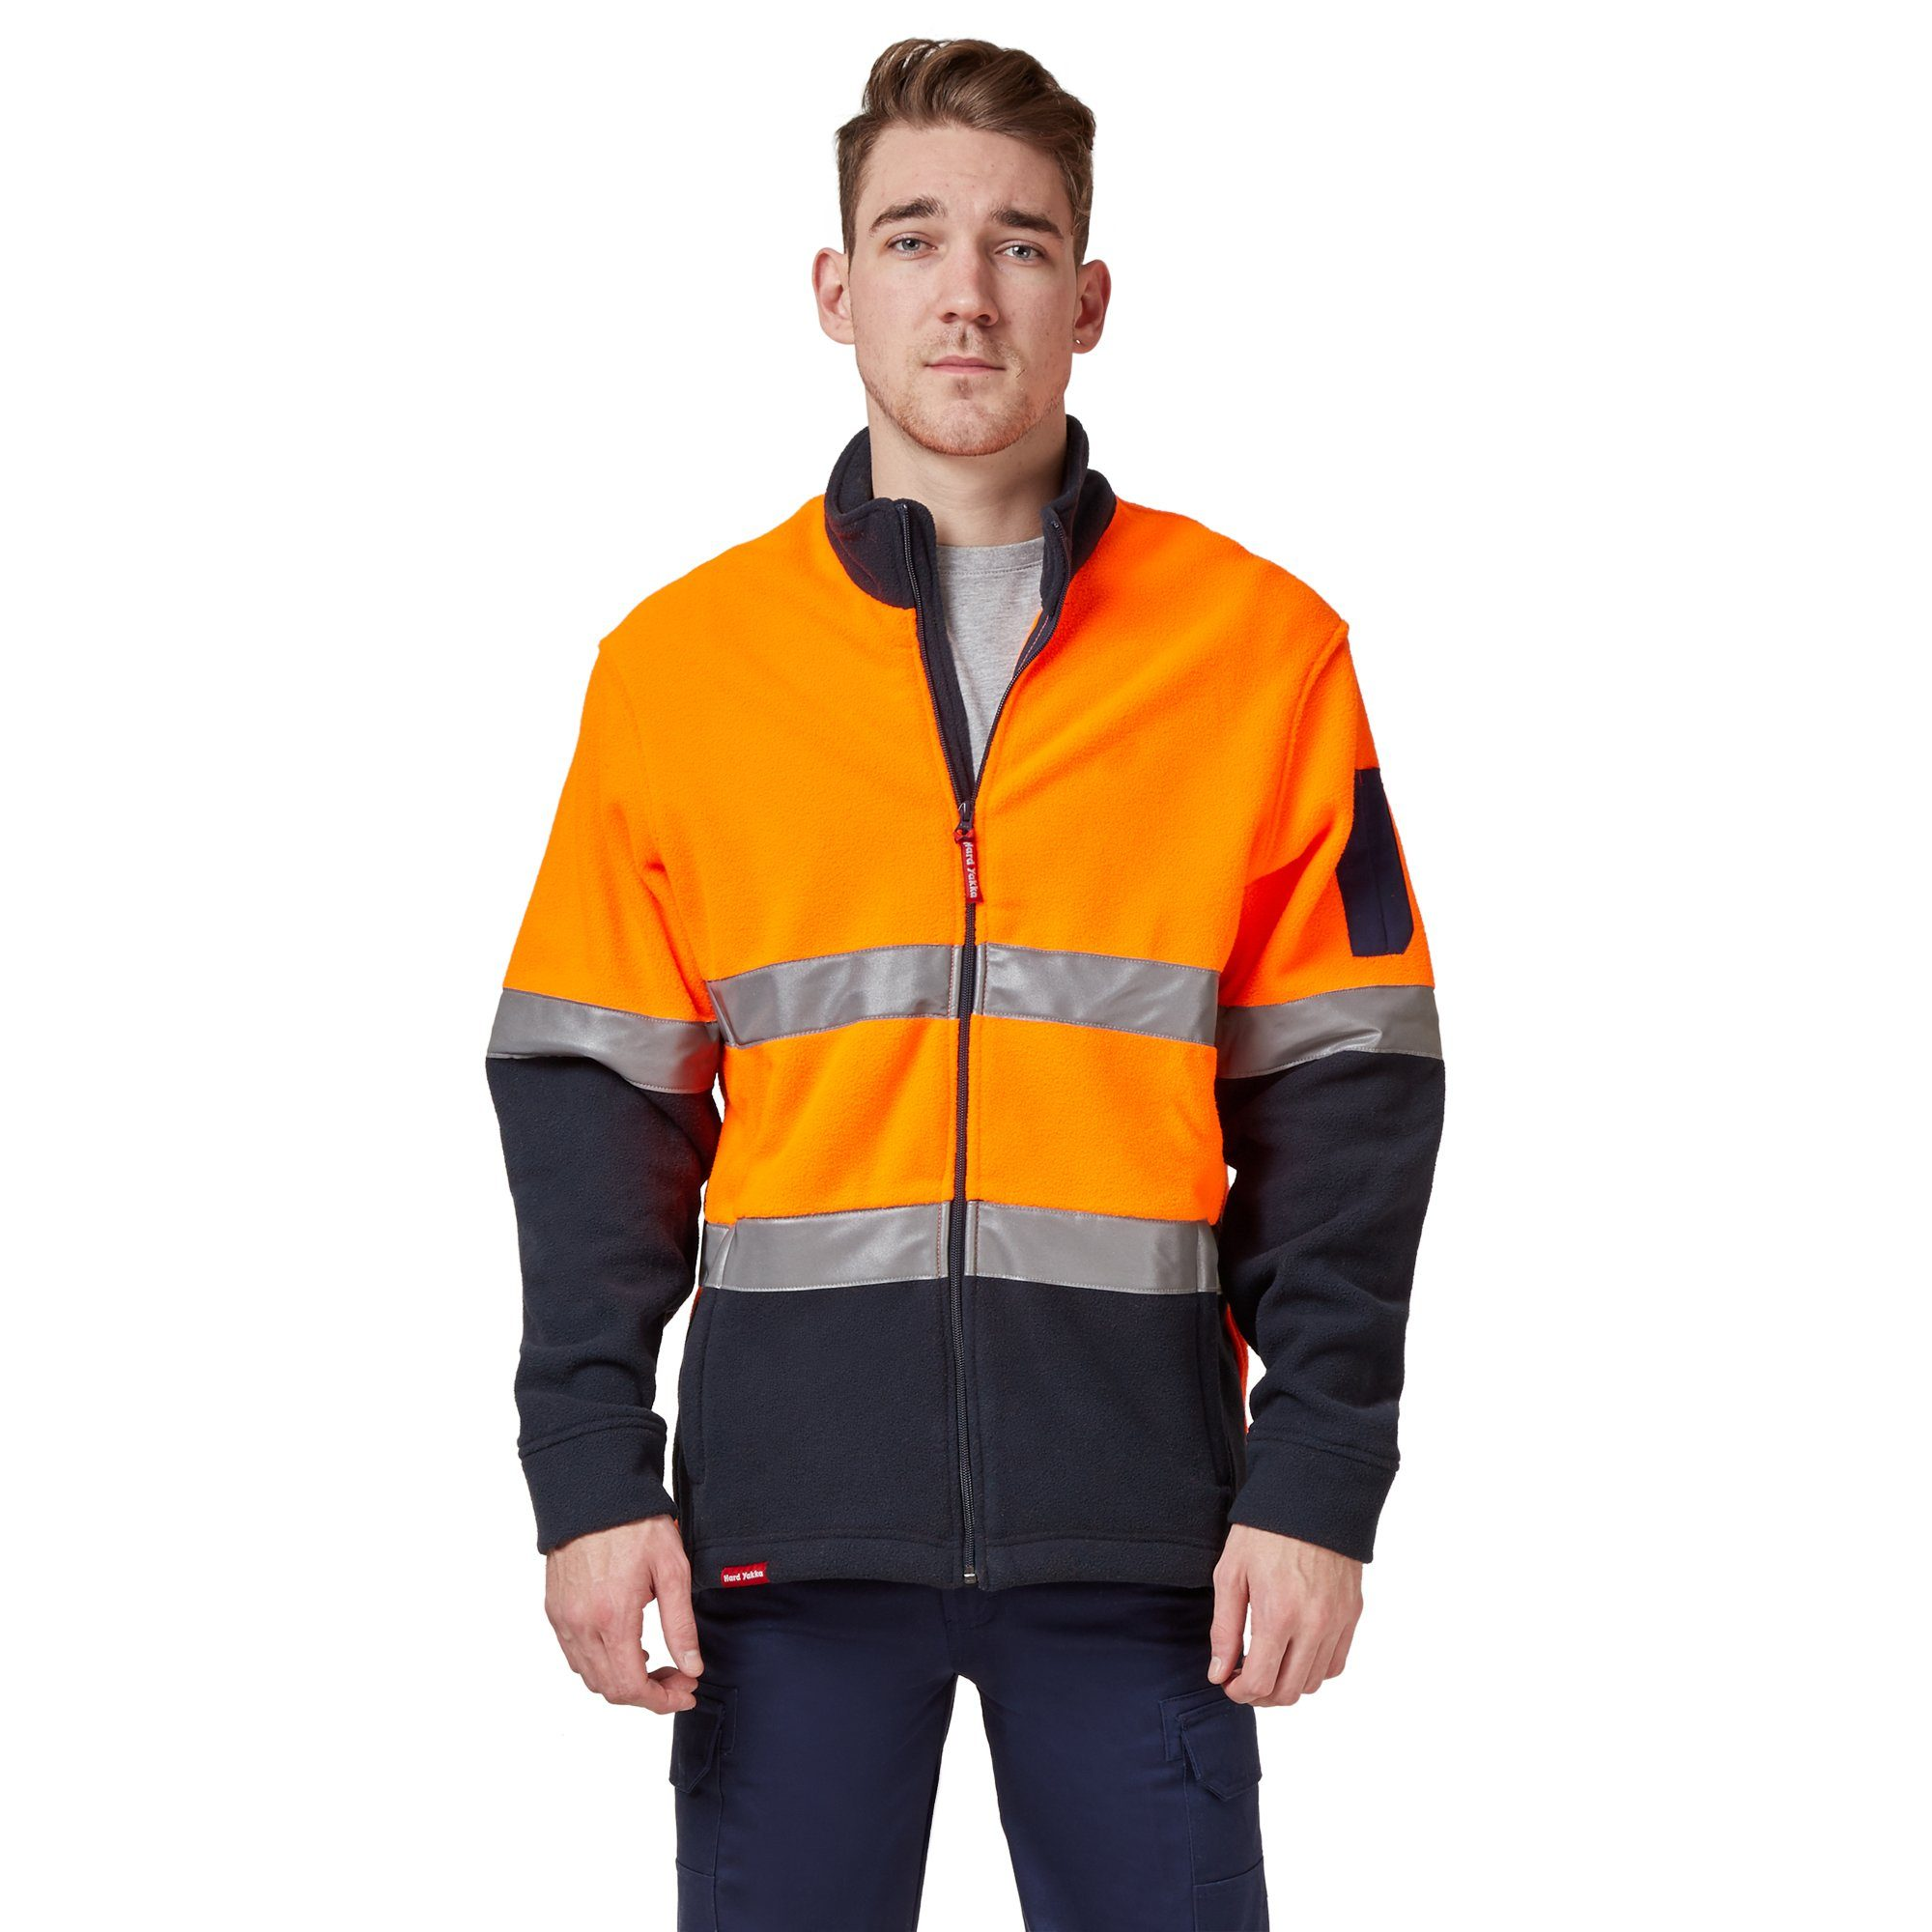 Hard Yakka Men's Hi-Vis Polar Fleece Jumper With Tape - Orange/Navy Workwear Isbister & Co Wholesale